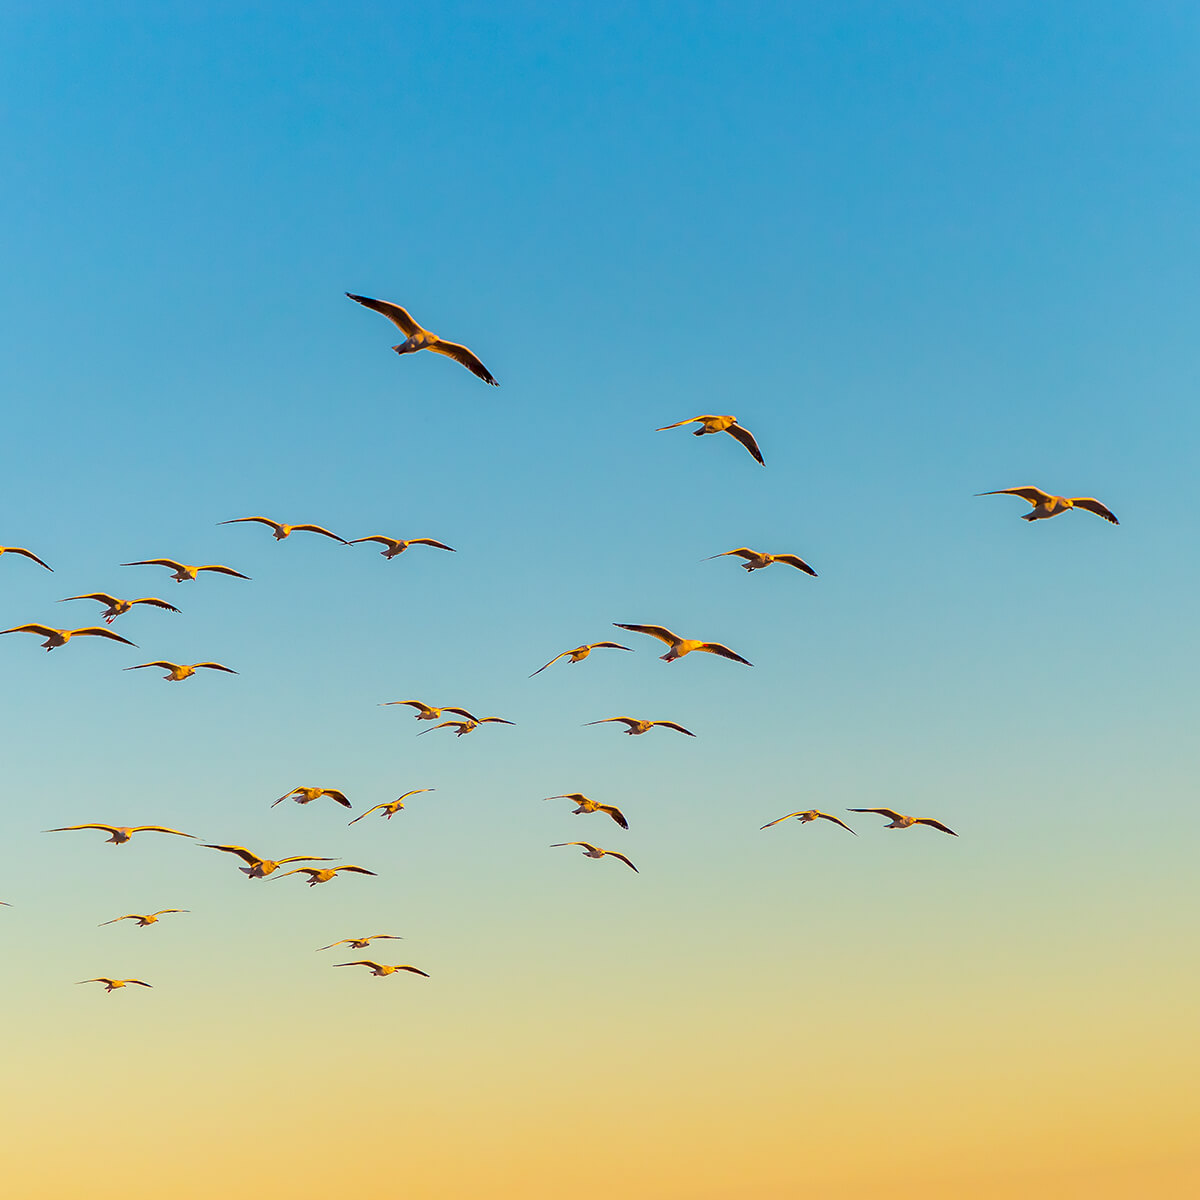 Landscape image of birds in flight